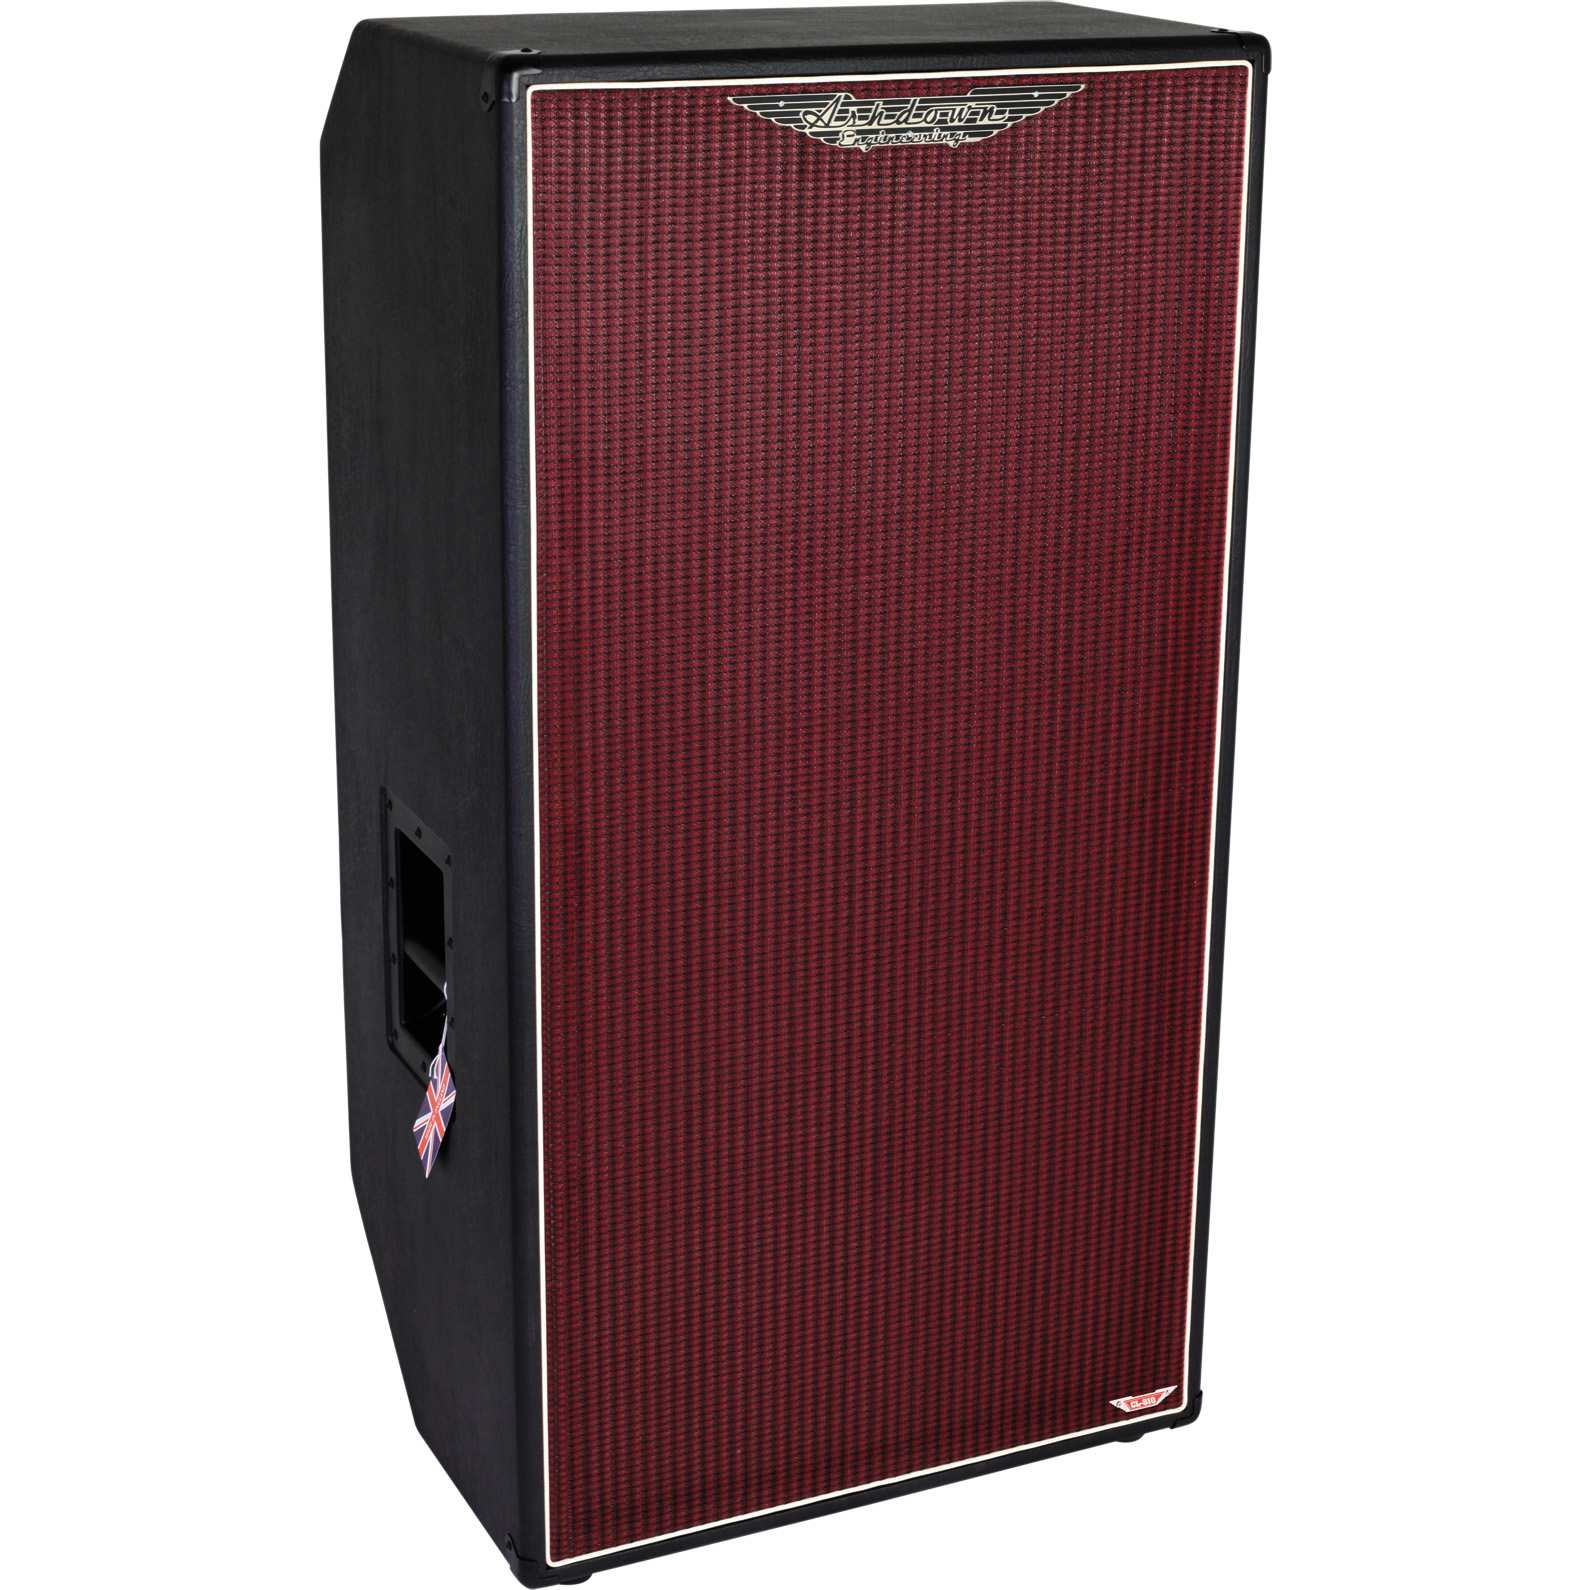 Ashdown CL-810 8X10 Inch Speakerkast Voor Basgitaar